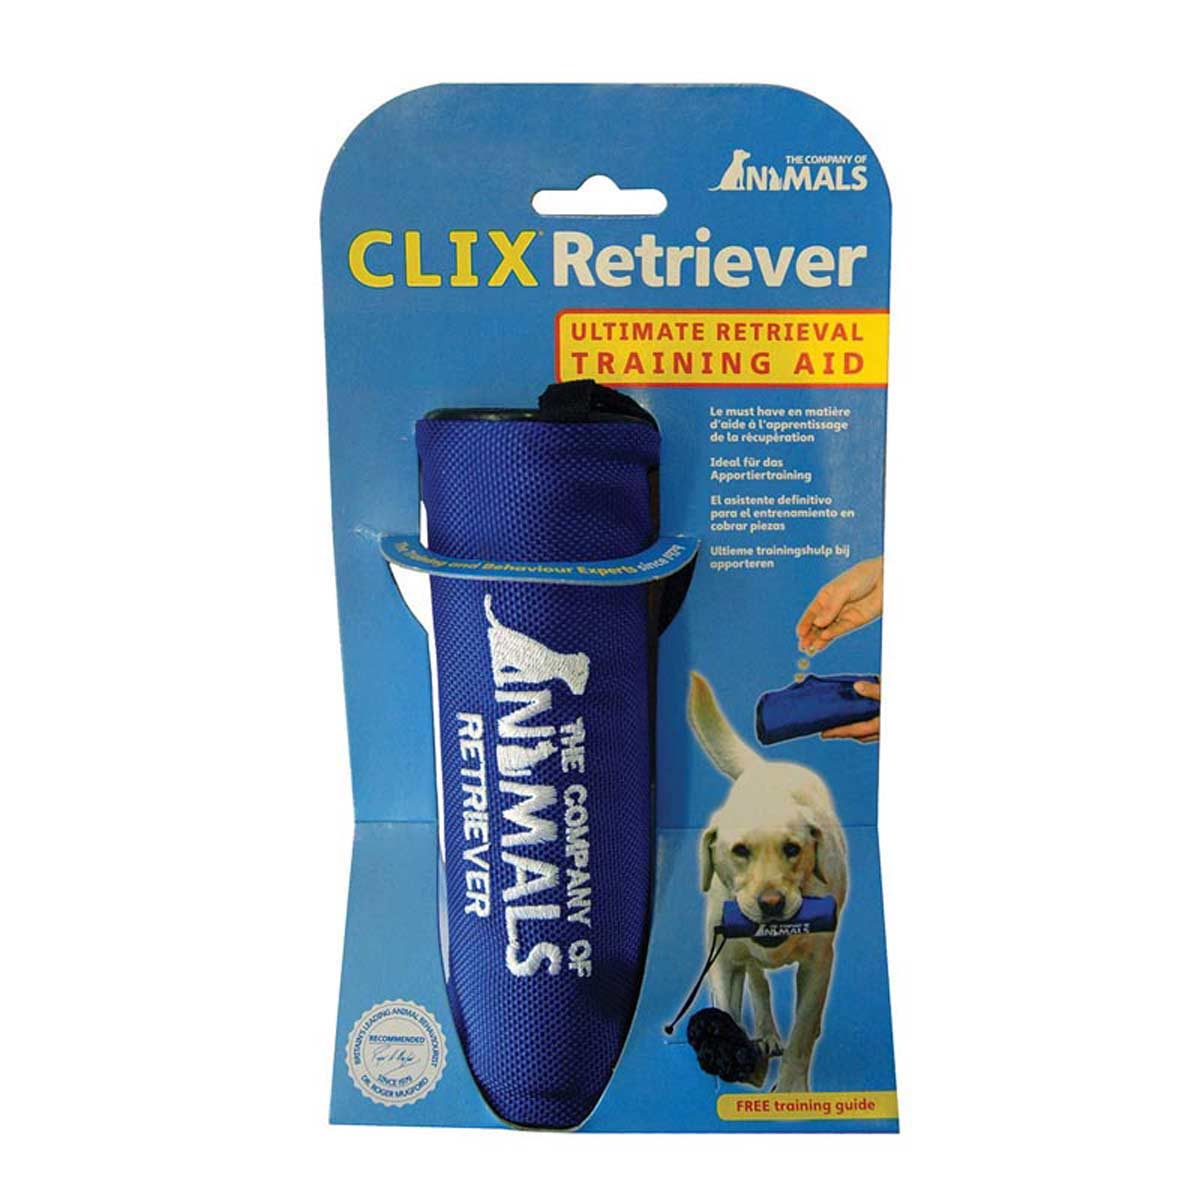 Clix Retriever Ultimate Training Aid for Dogs - in Packaging